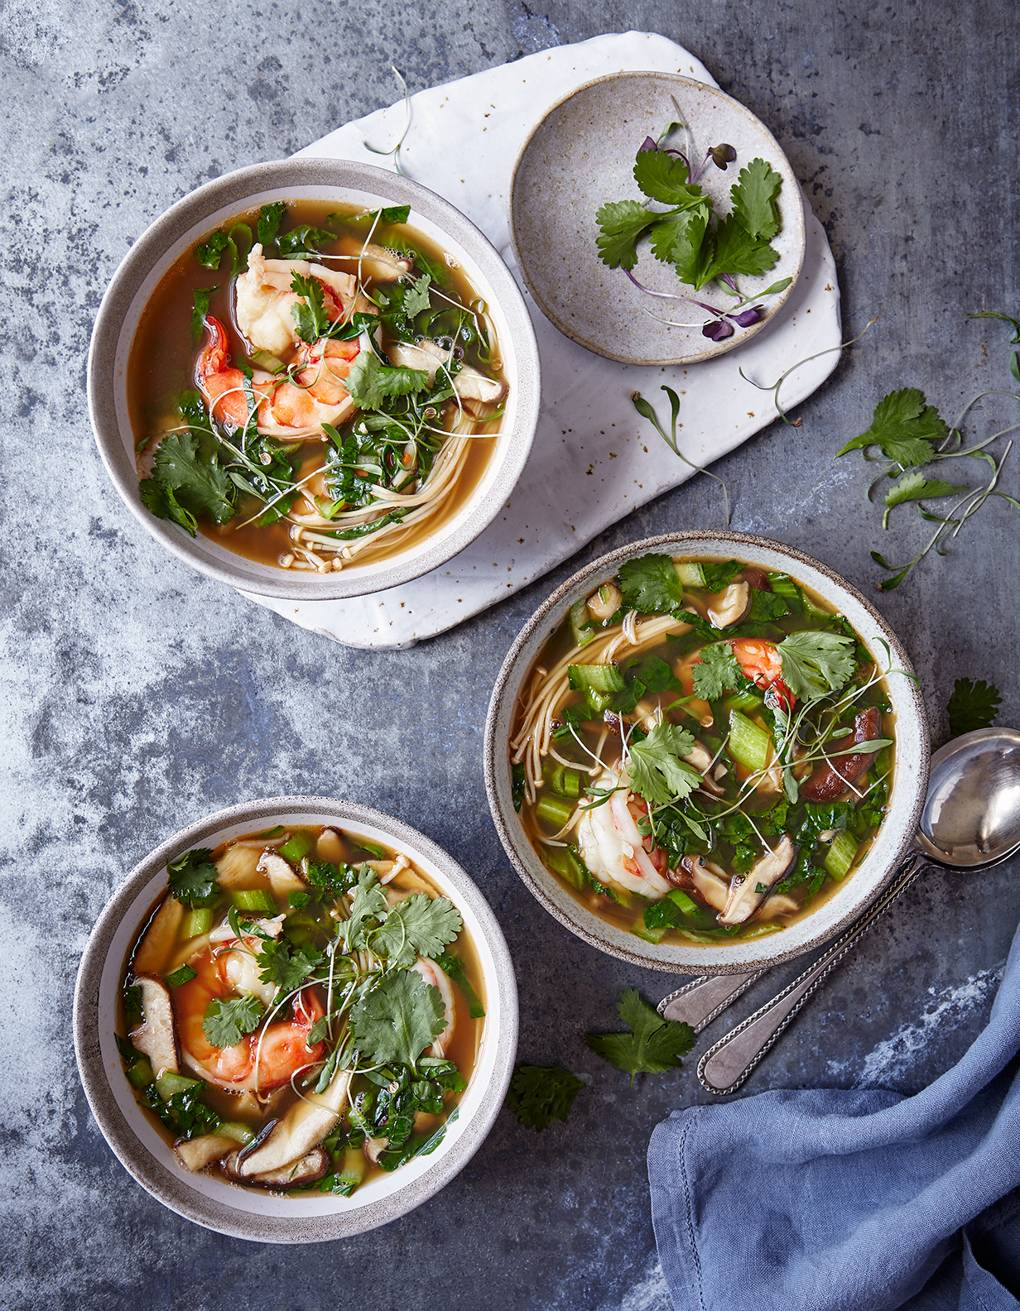 Forum on this topic: Hot and Sour Tiger Prawn Soup Recipe, hot-and-sour-tiger-prawn-soup-recipe/